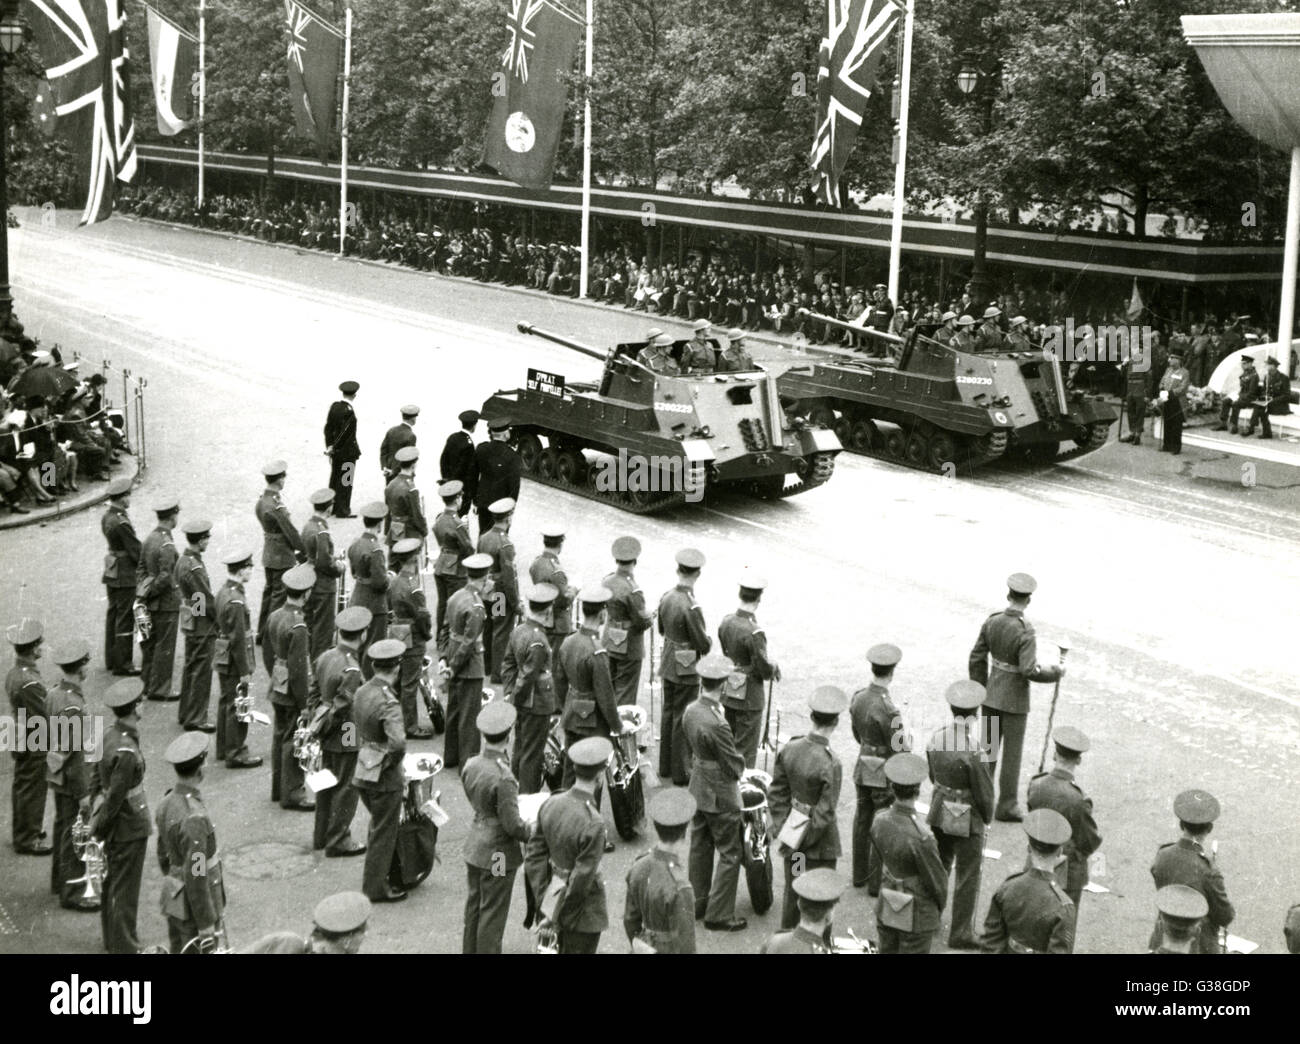 The Victory Parade : tanks  pass the Saluting Base        Date: 8 June 1946 - Stock Image